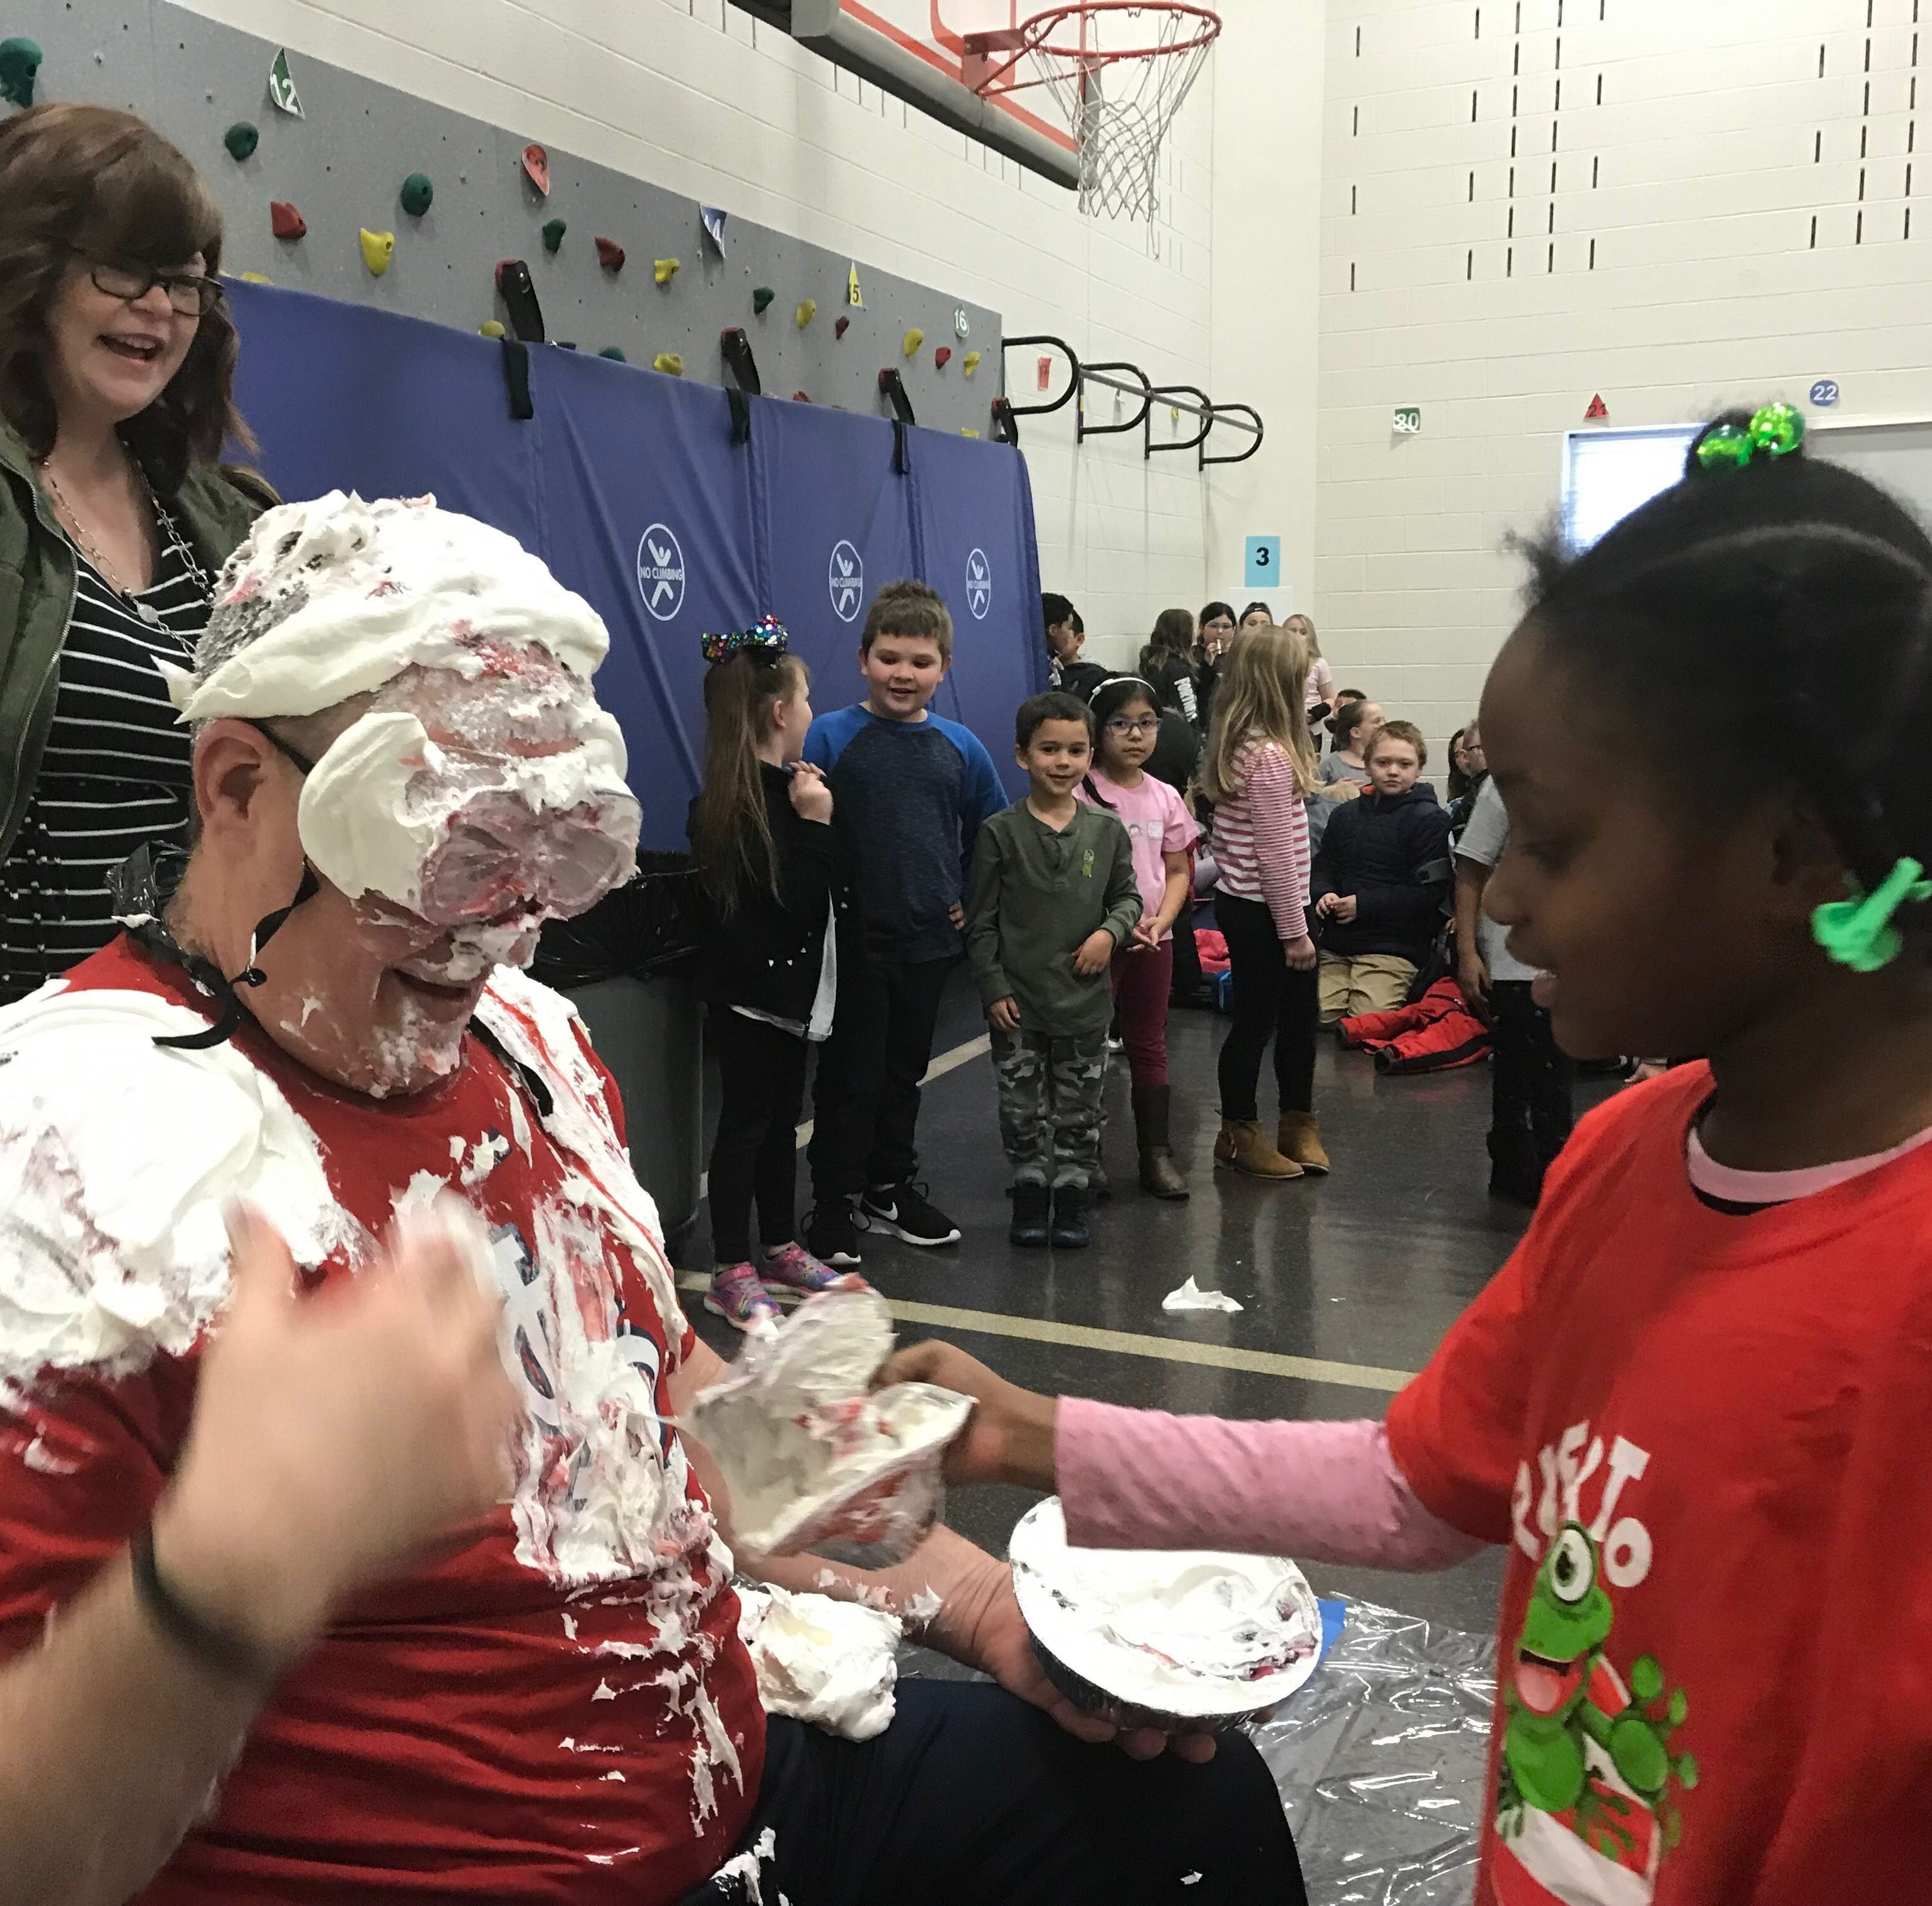 'My hair will grow back': Clearview principal shaves head, gets pied in face